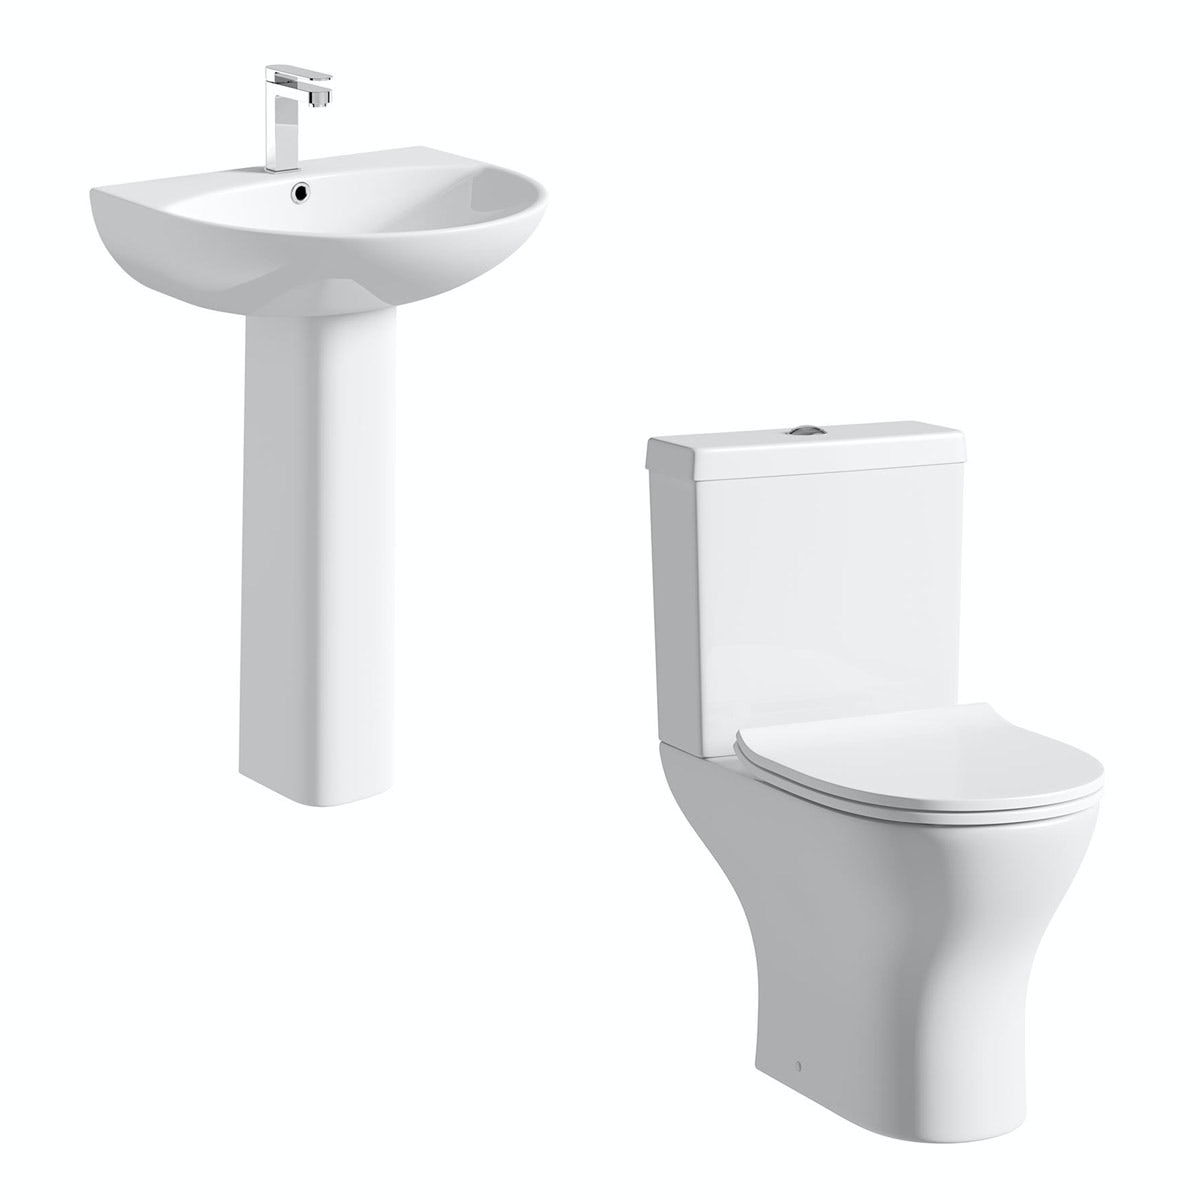 Orchard Derwent round cloakroom suite with full pedestal basin 550mm